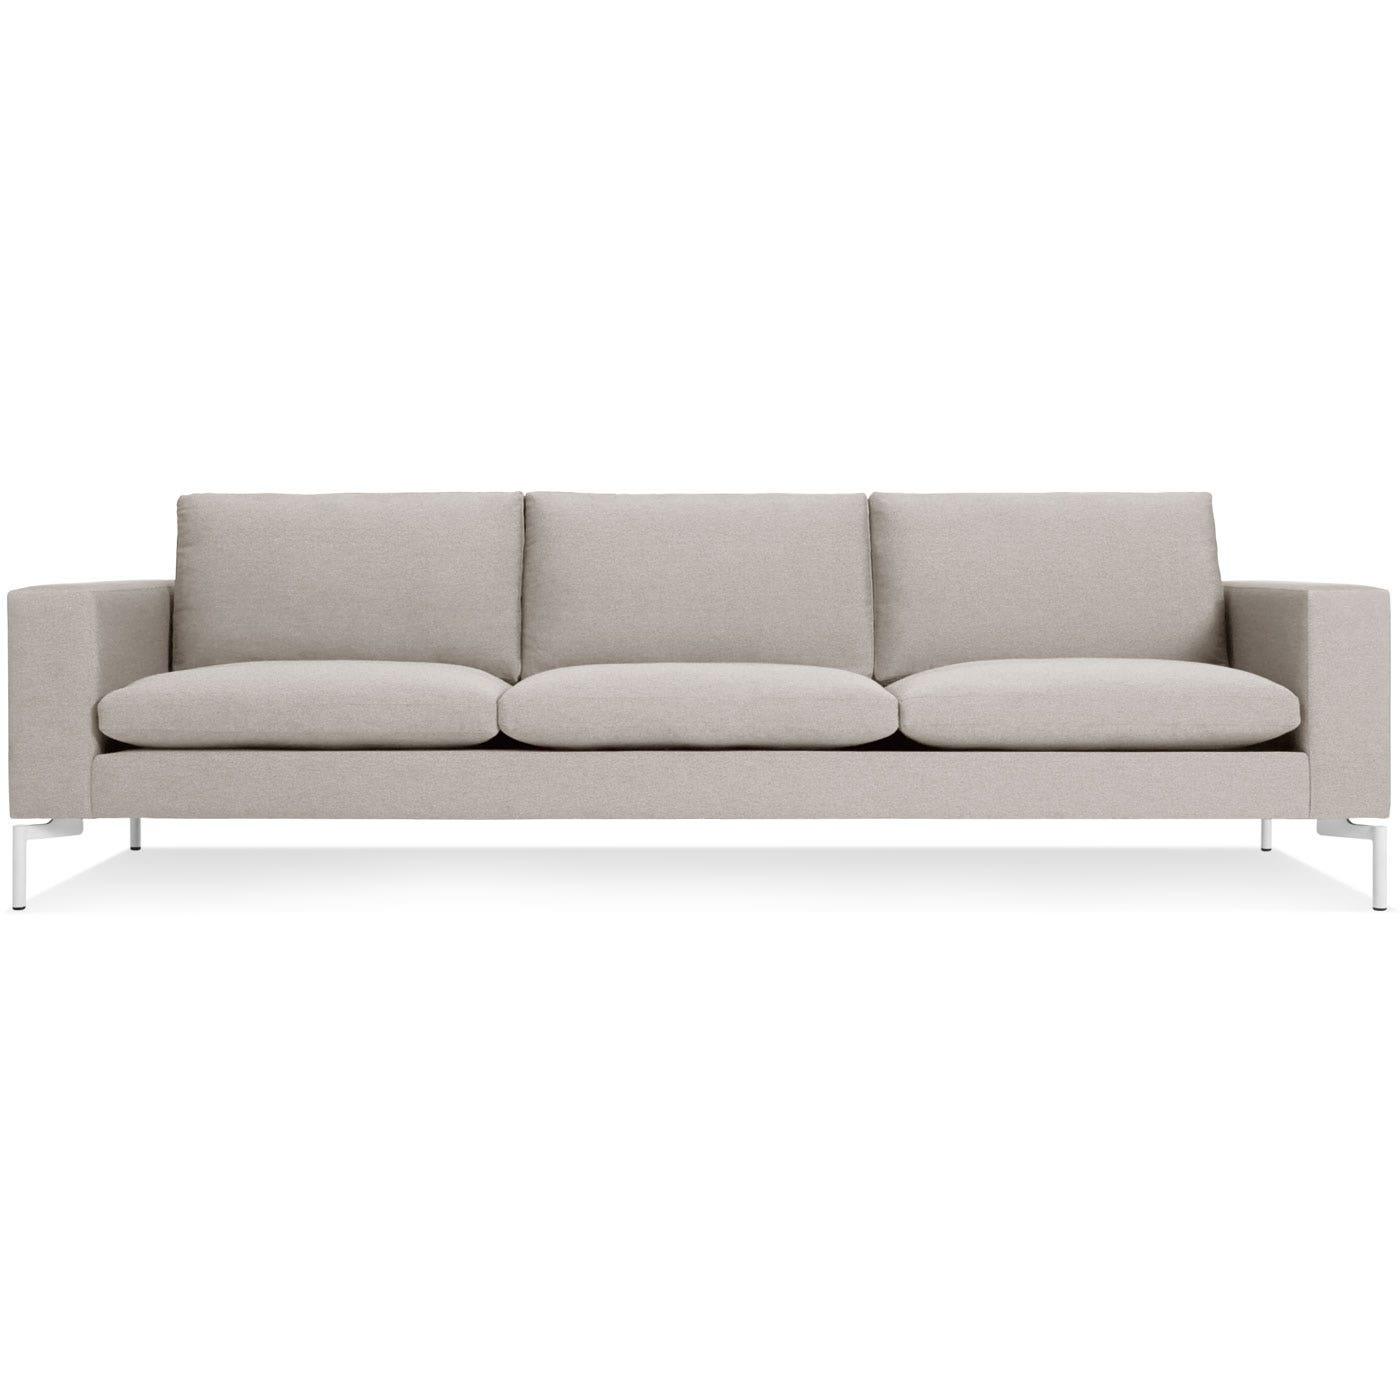 New Standard Large Sofa